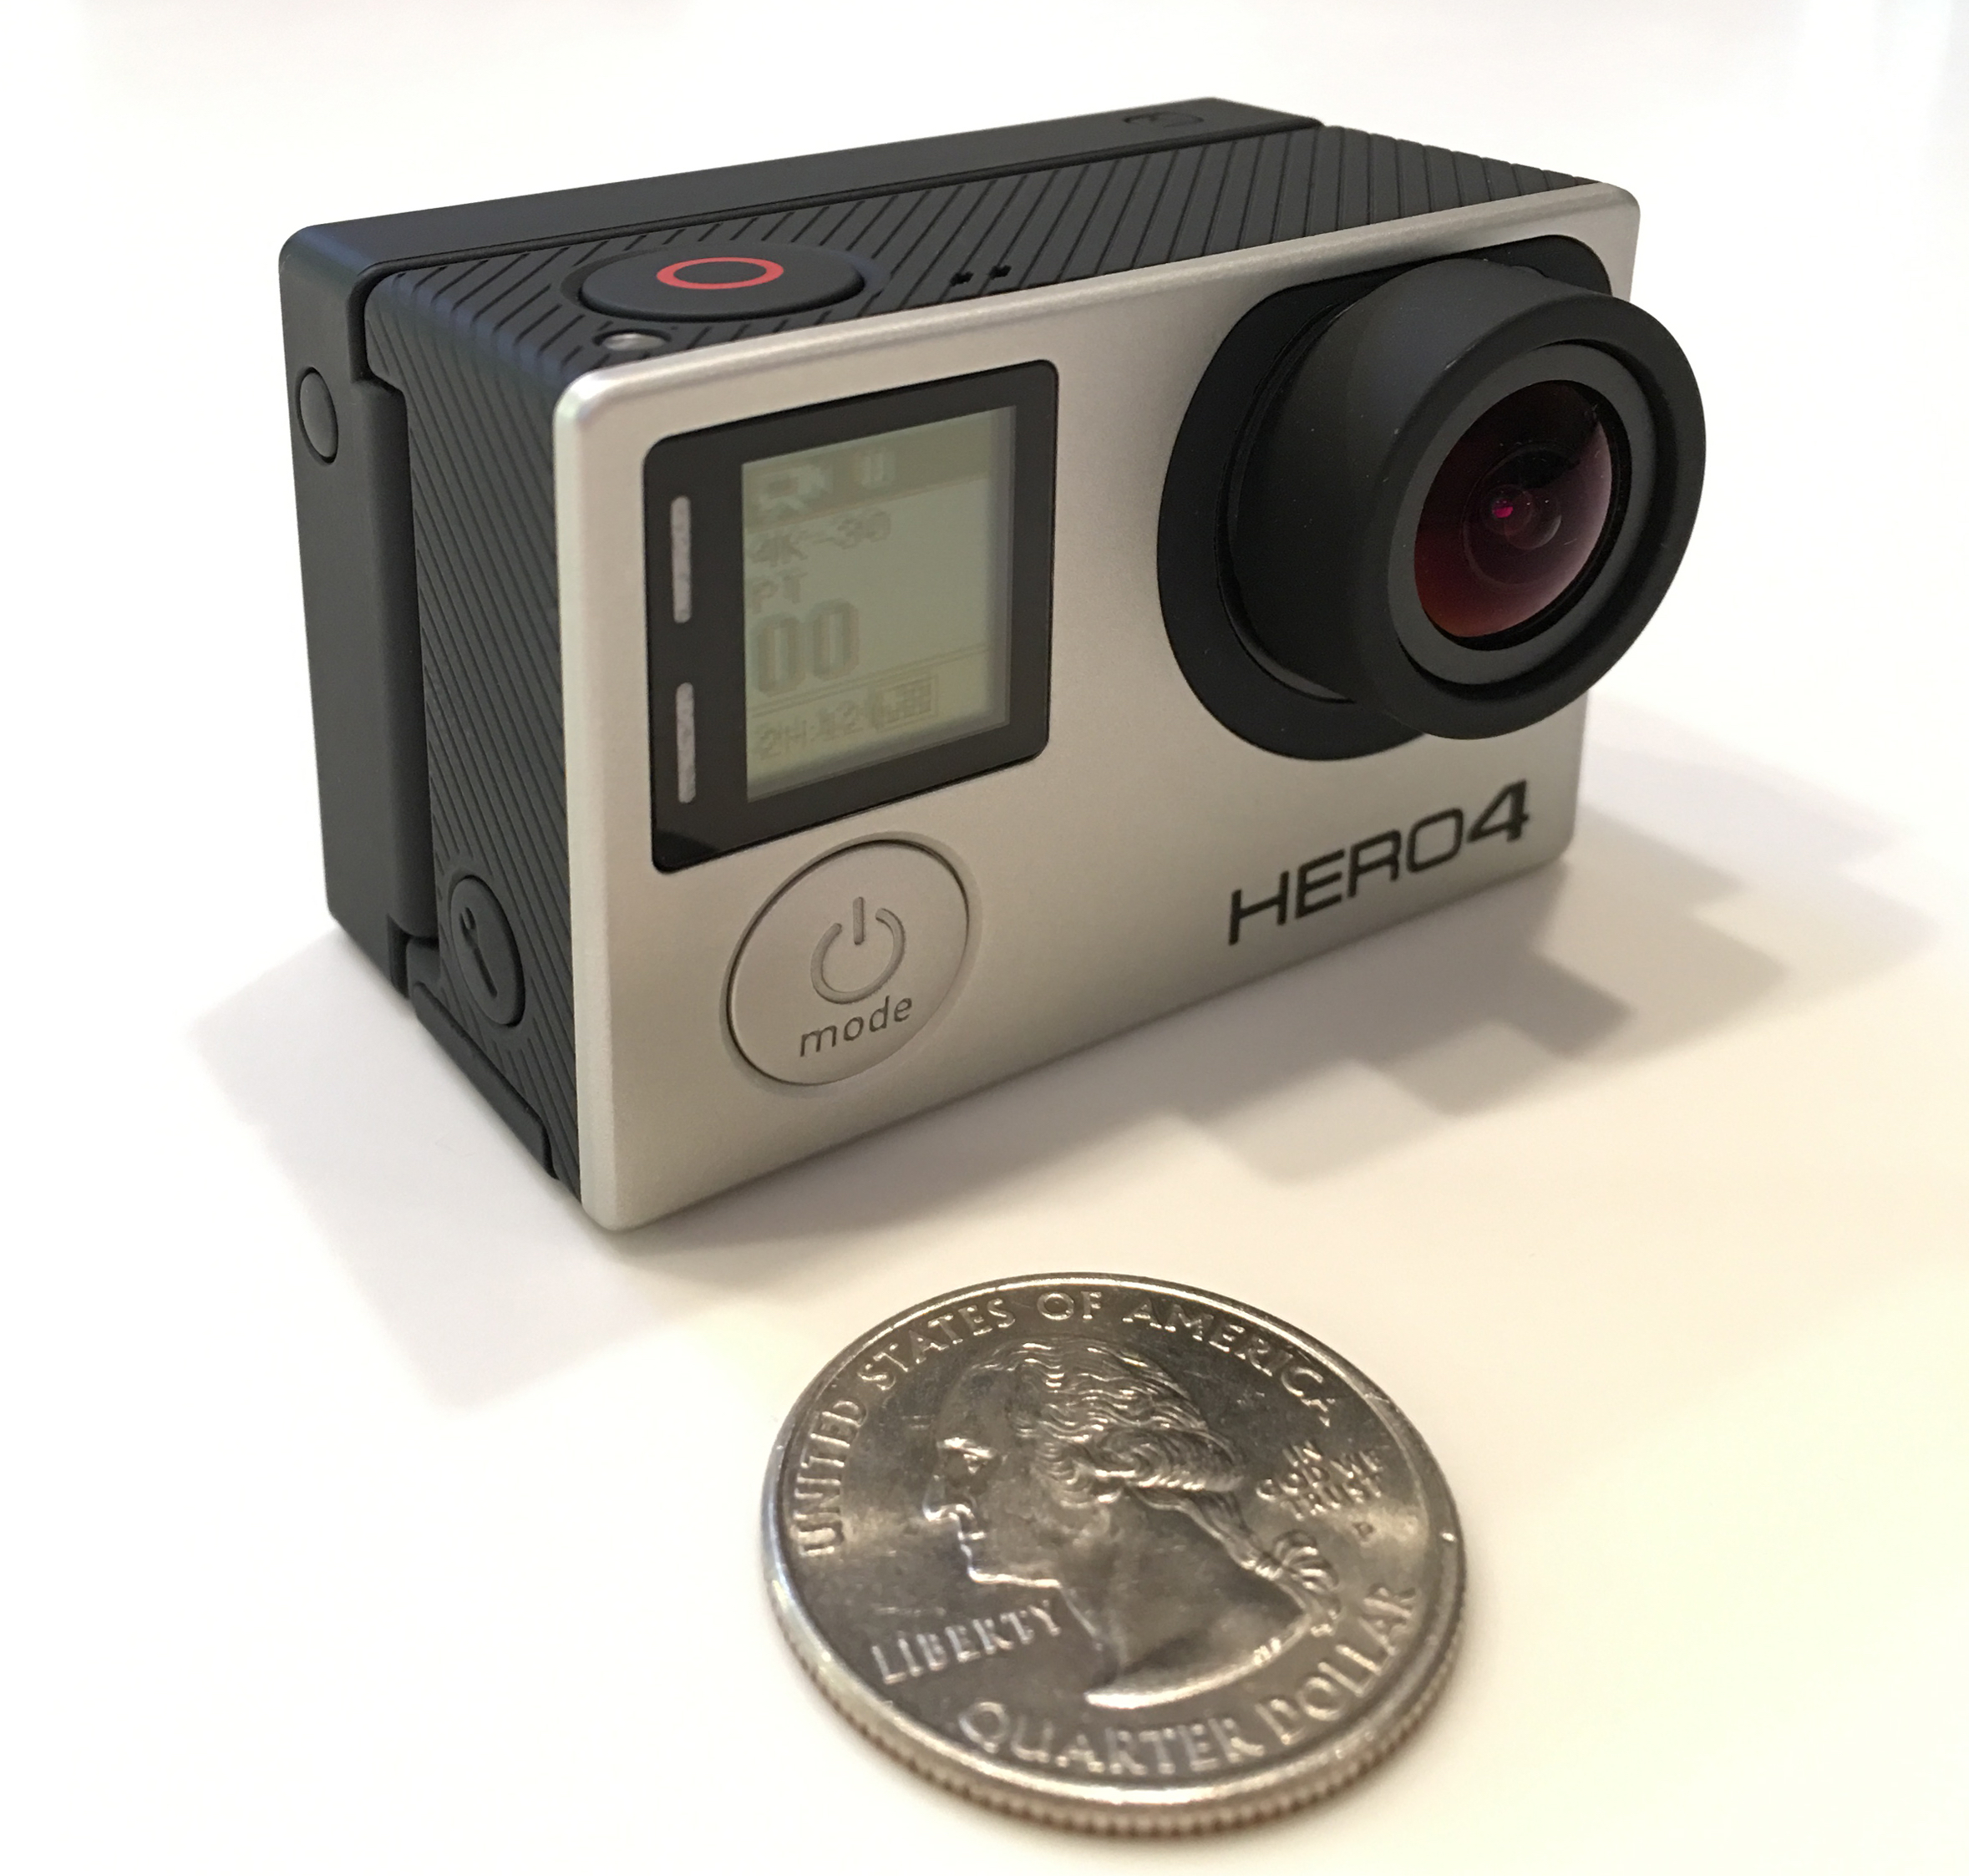 GoPro Hero4 Black with BacPac attached